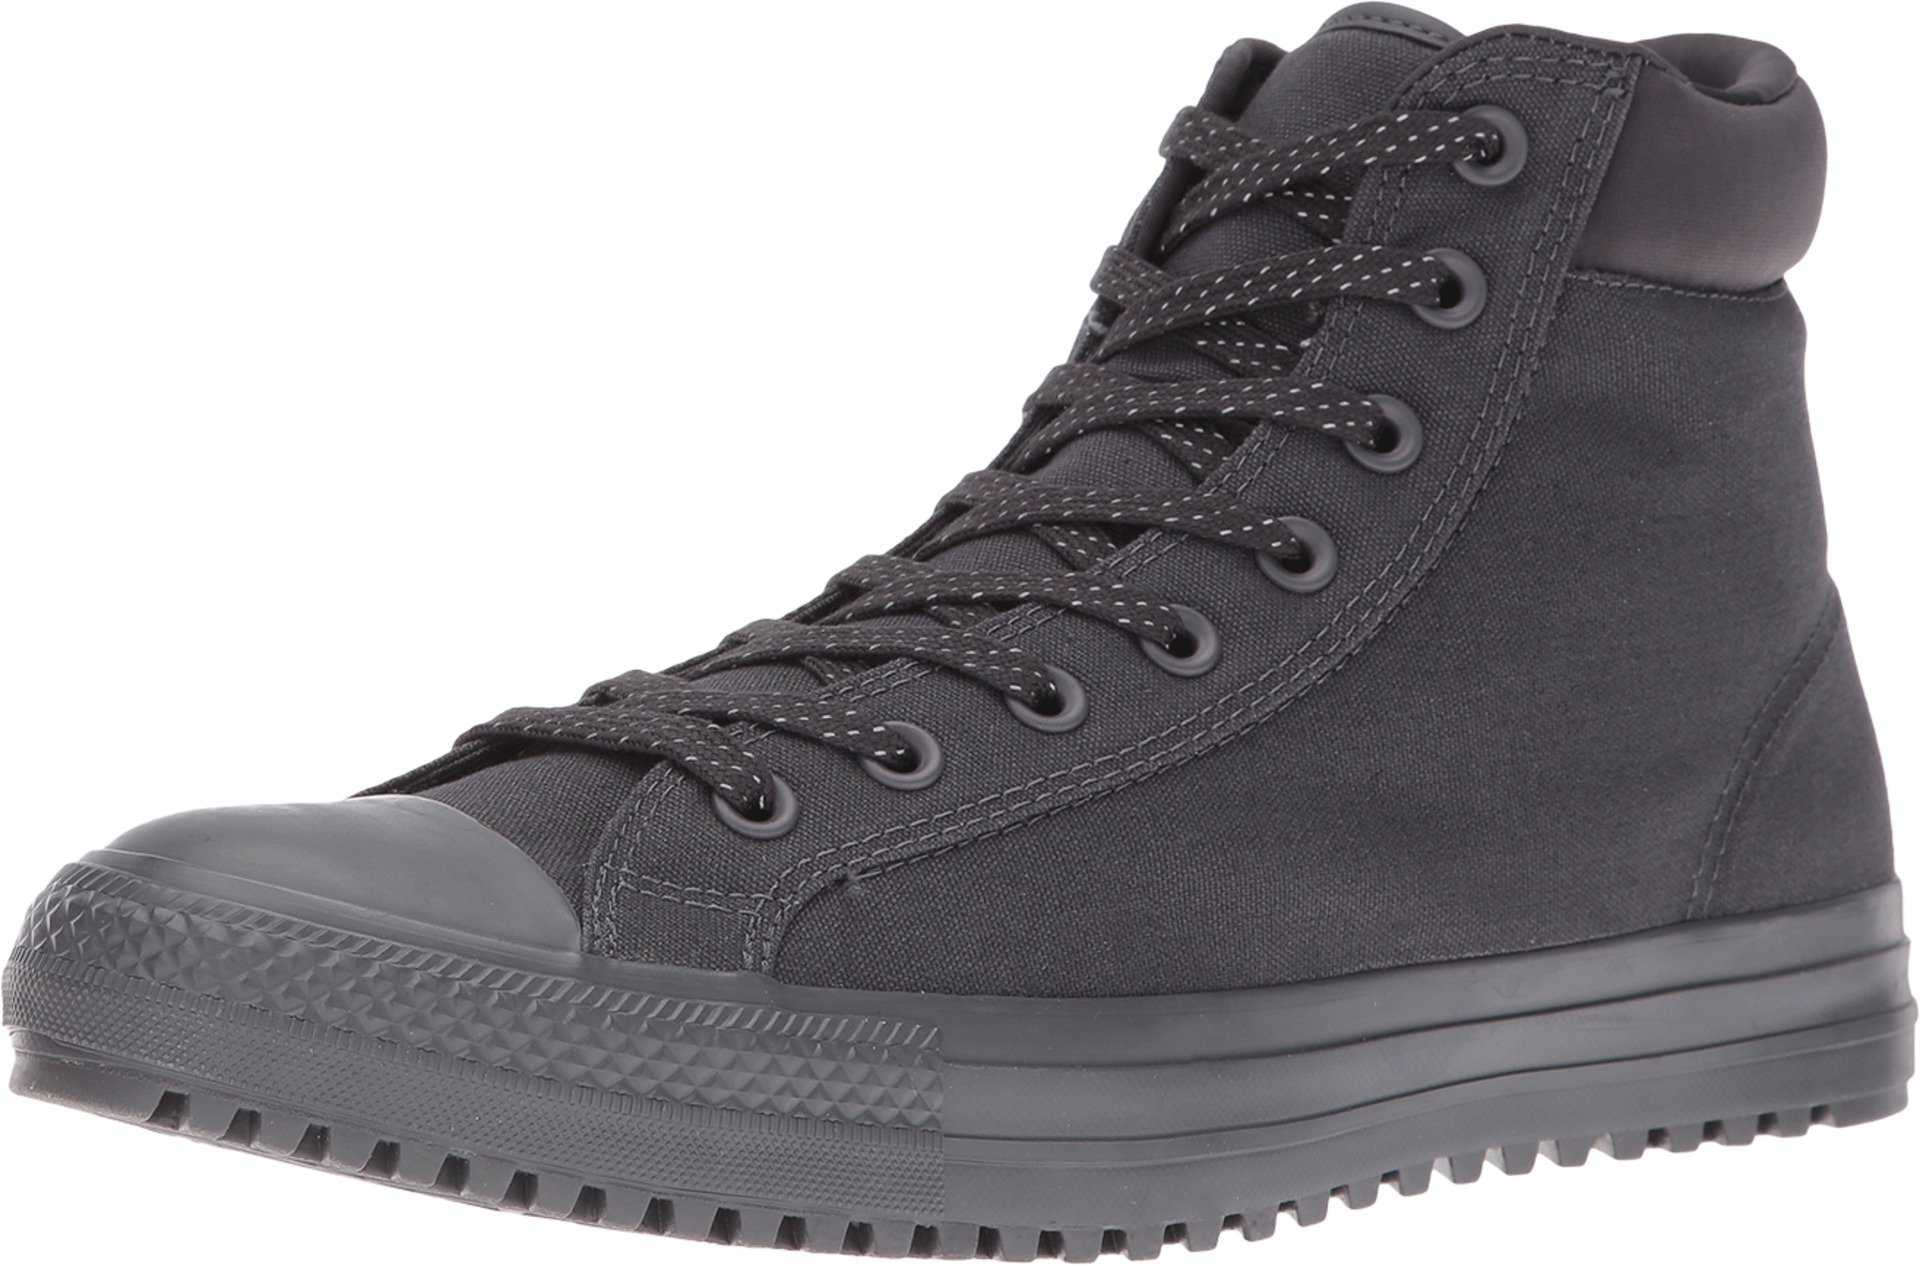 Converse Chuck Taylor All Star CTAS Boot PC HI Almost Black (Grey) (Medium/5.5 D(M) US)